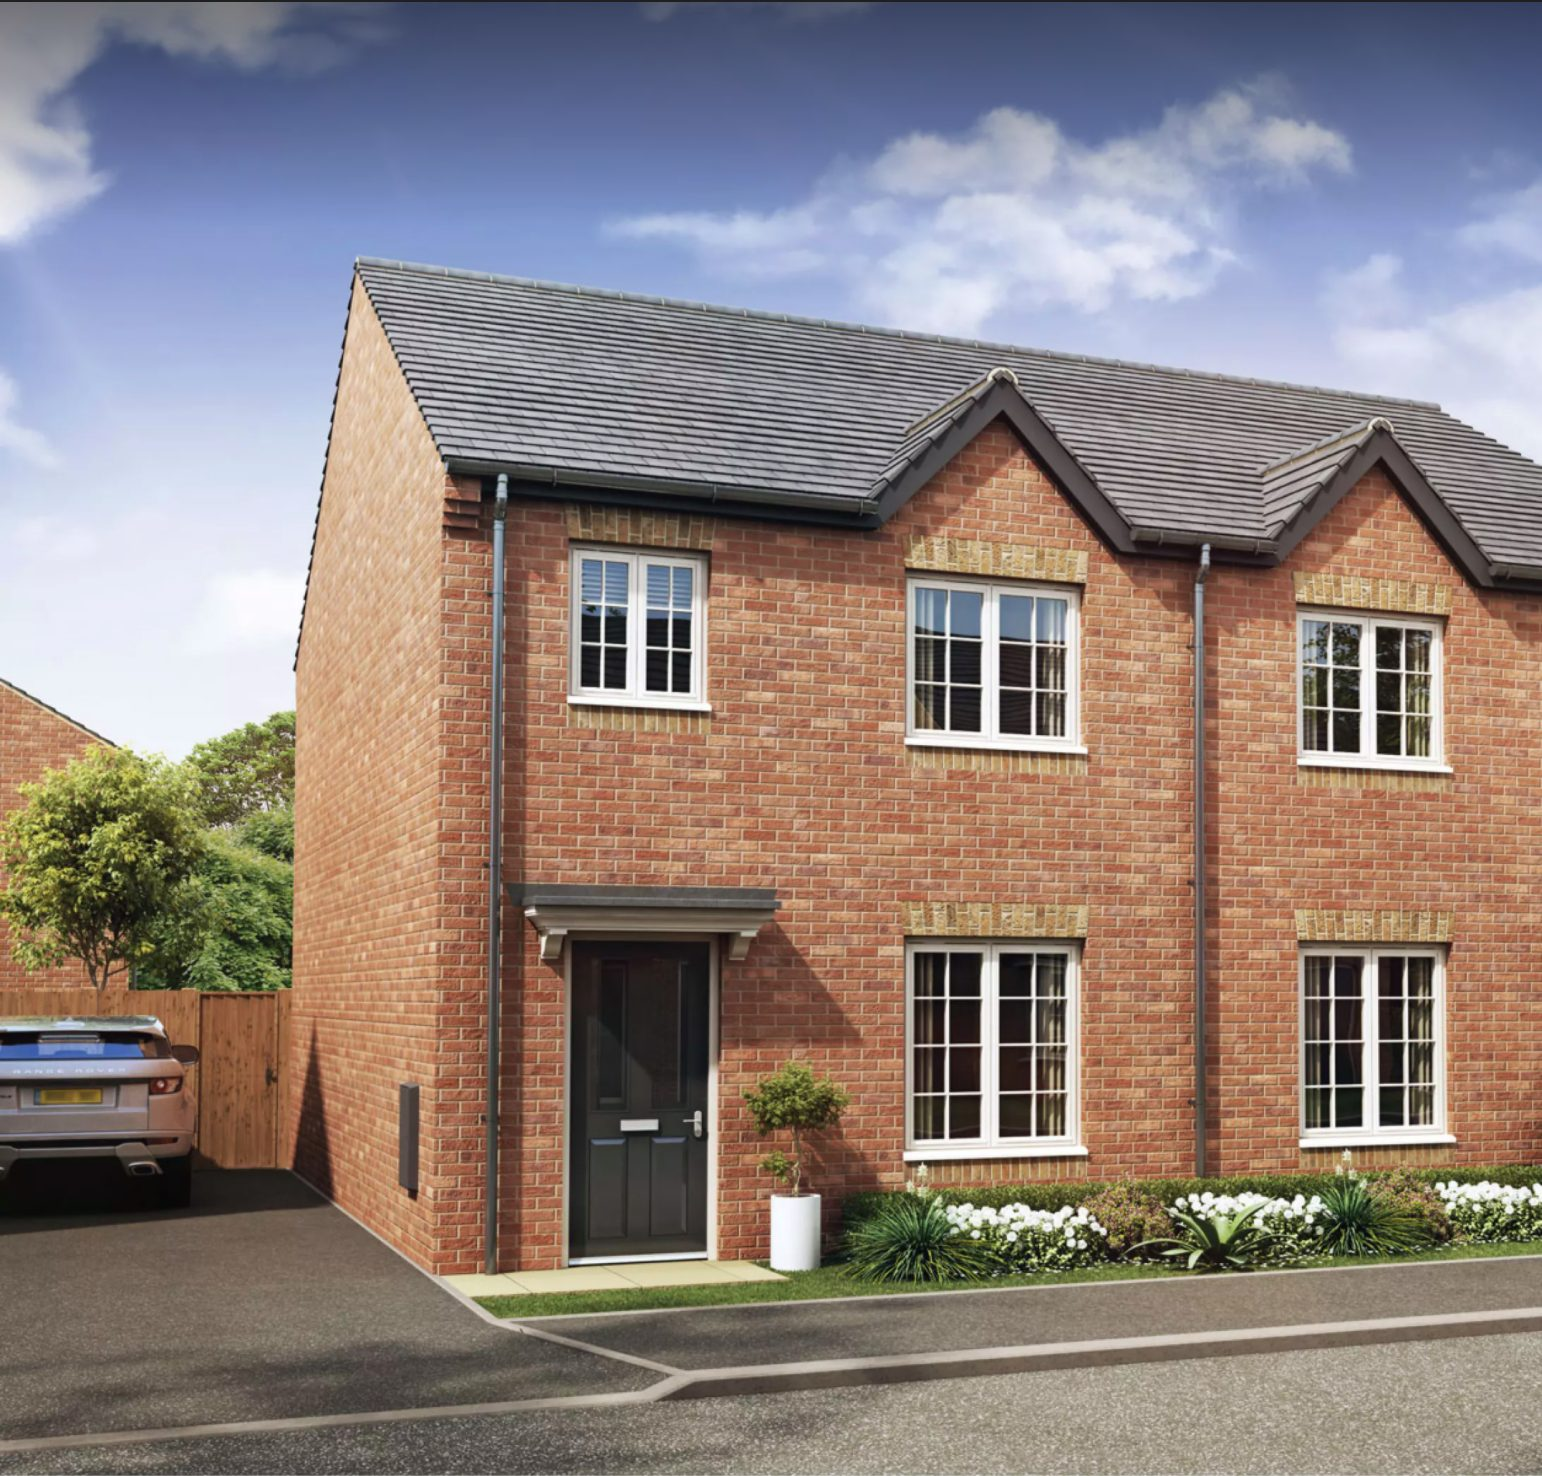 New shared ownership scheme launched at Stonecross Rise